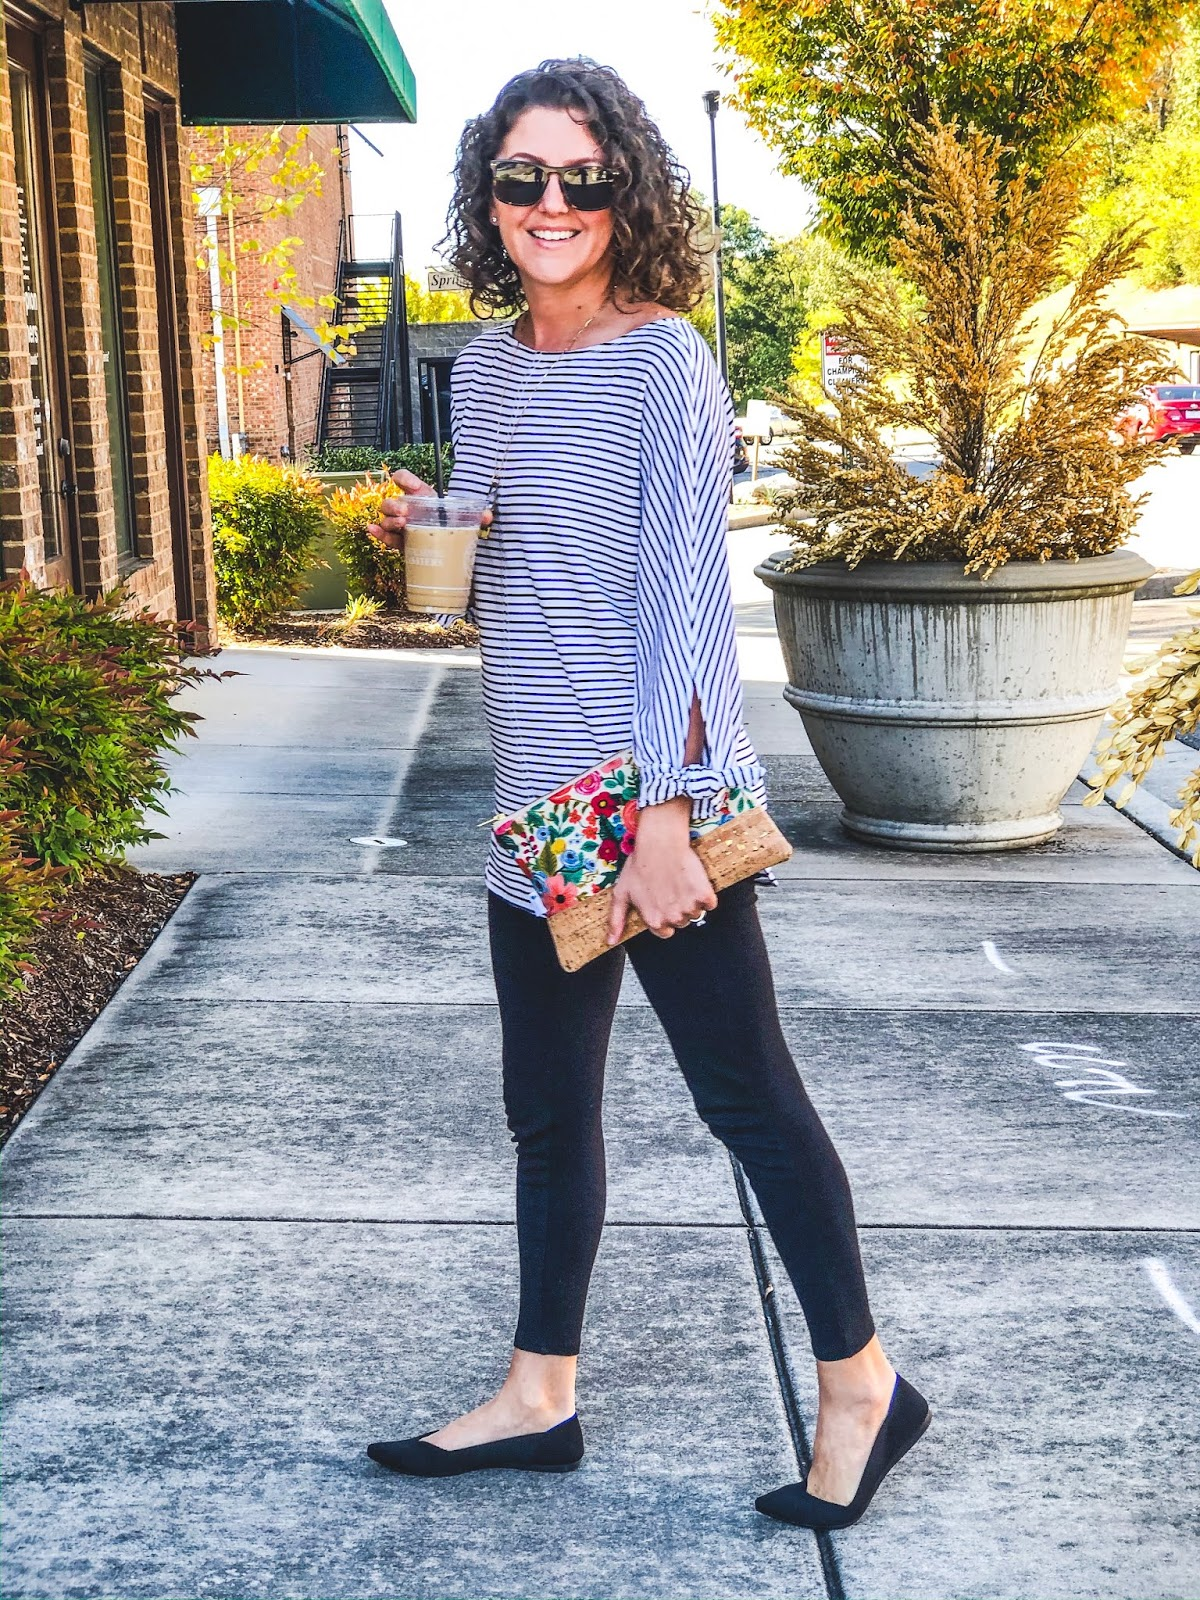 Jord sunglasses, Daisy Faye Designs floral clutch, striped tunic, black leggings, roadkill gems necklace, oils necklace, fall outfit, winter outfit, shaw avenue, jenn pennell, lee university